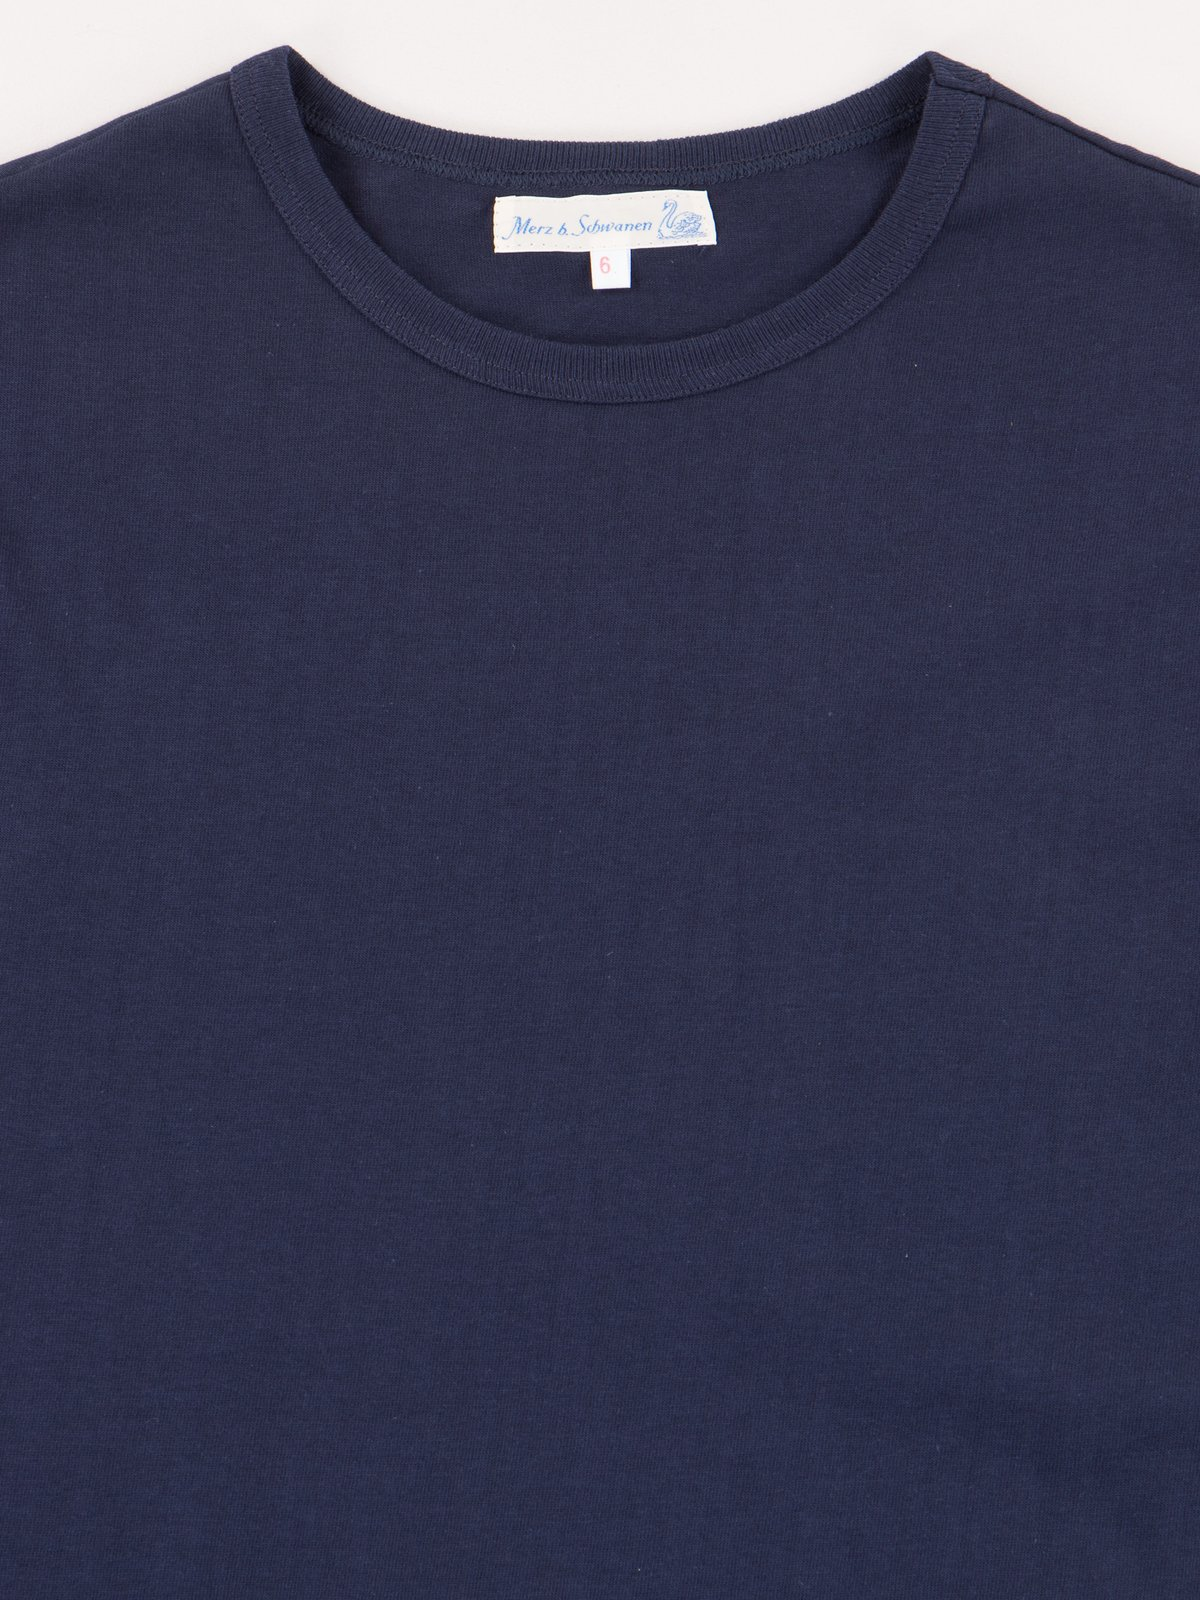 Ink Blue 215 Organic Cotton Army Shirt - Image 2